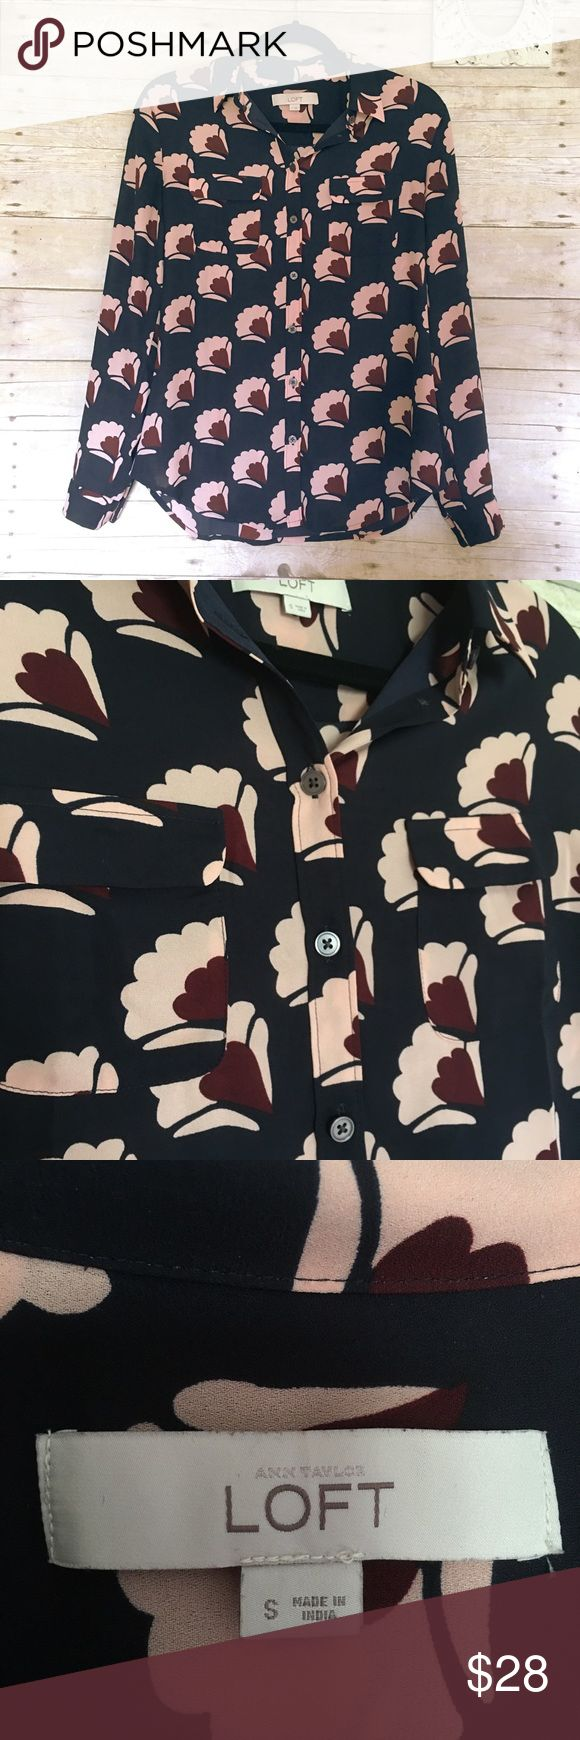 LOFT | Navy Fanfare Utility Blouse Ann Taylor LOFT | Dark navy blue blouse with light pink and maroon fan designs. It has two pockets on either side of the chest. Light and soft material in perfect condition! LOFT Tops Button Down Shirts